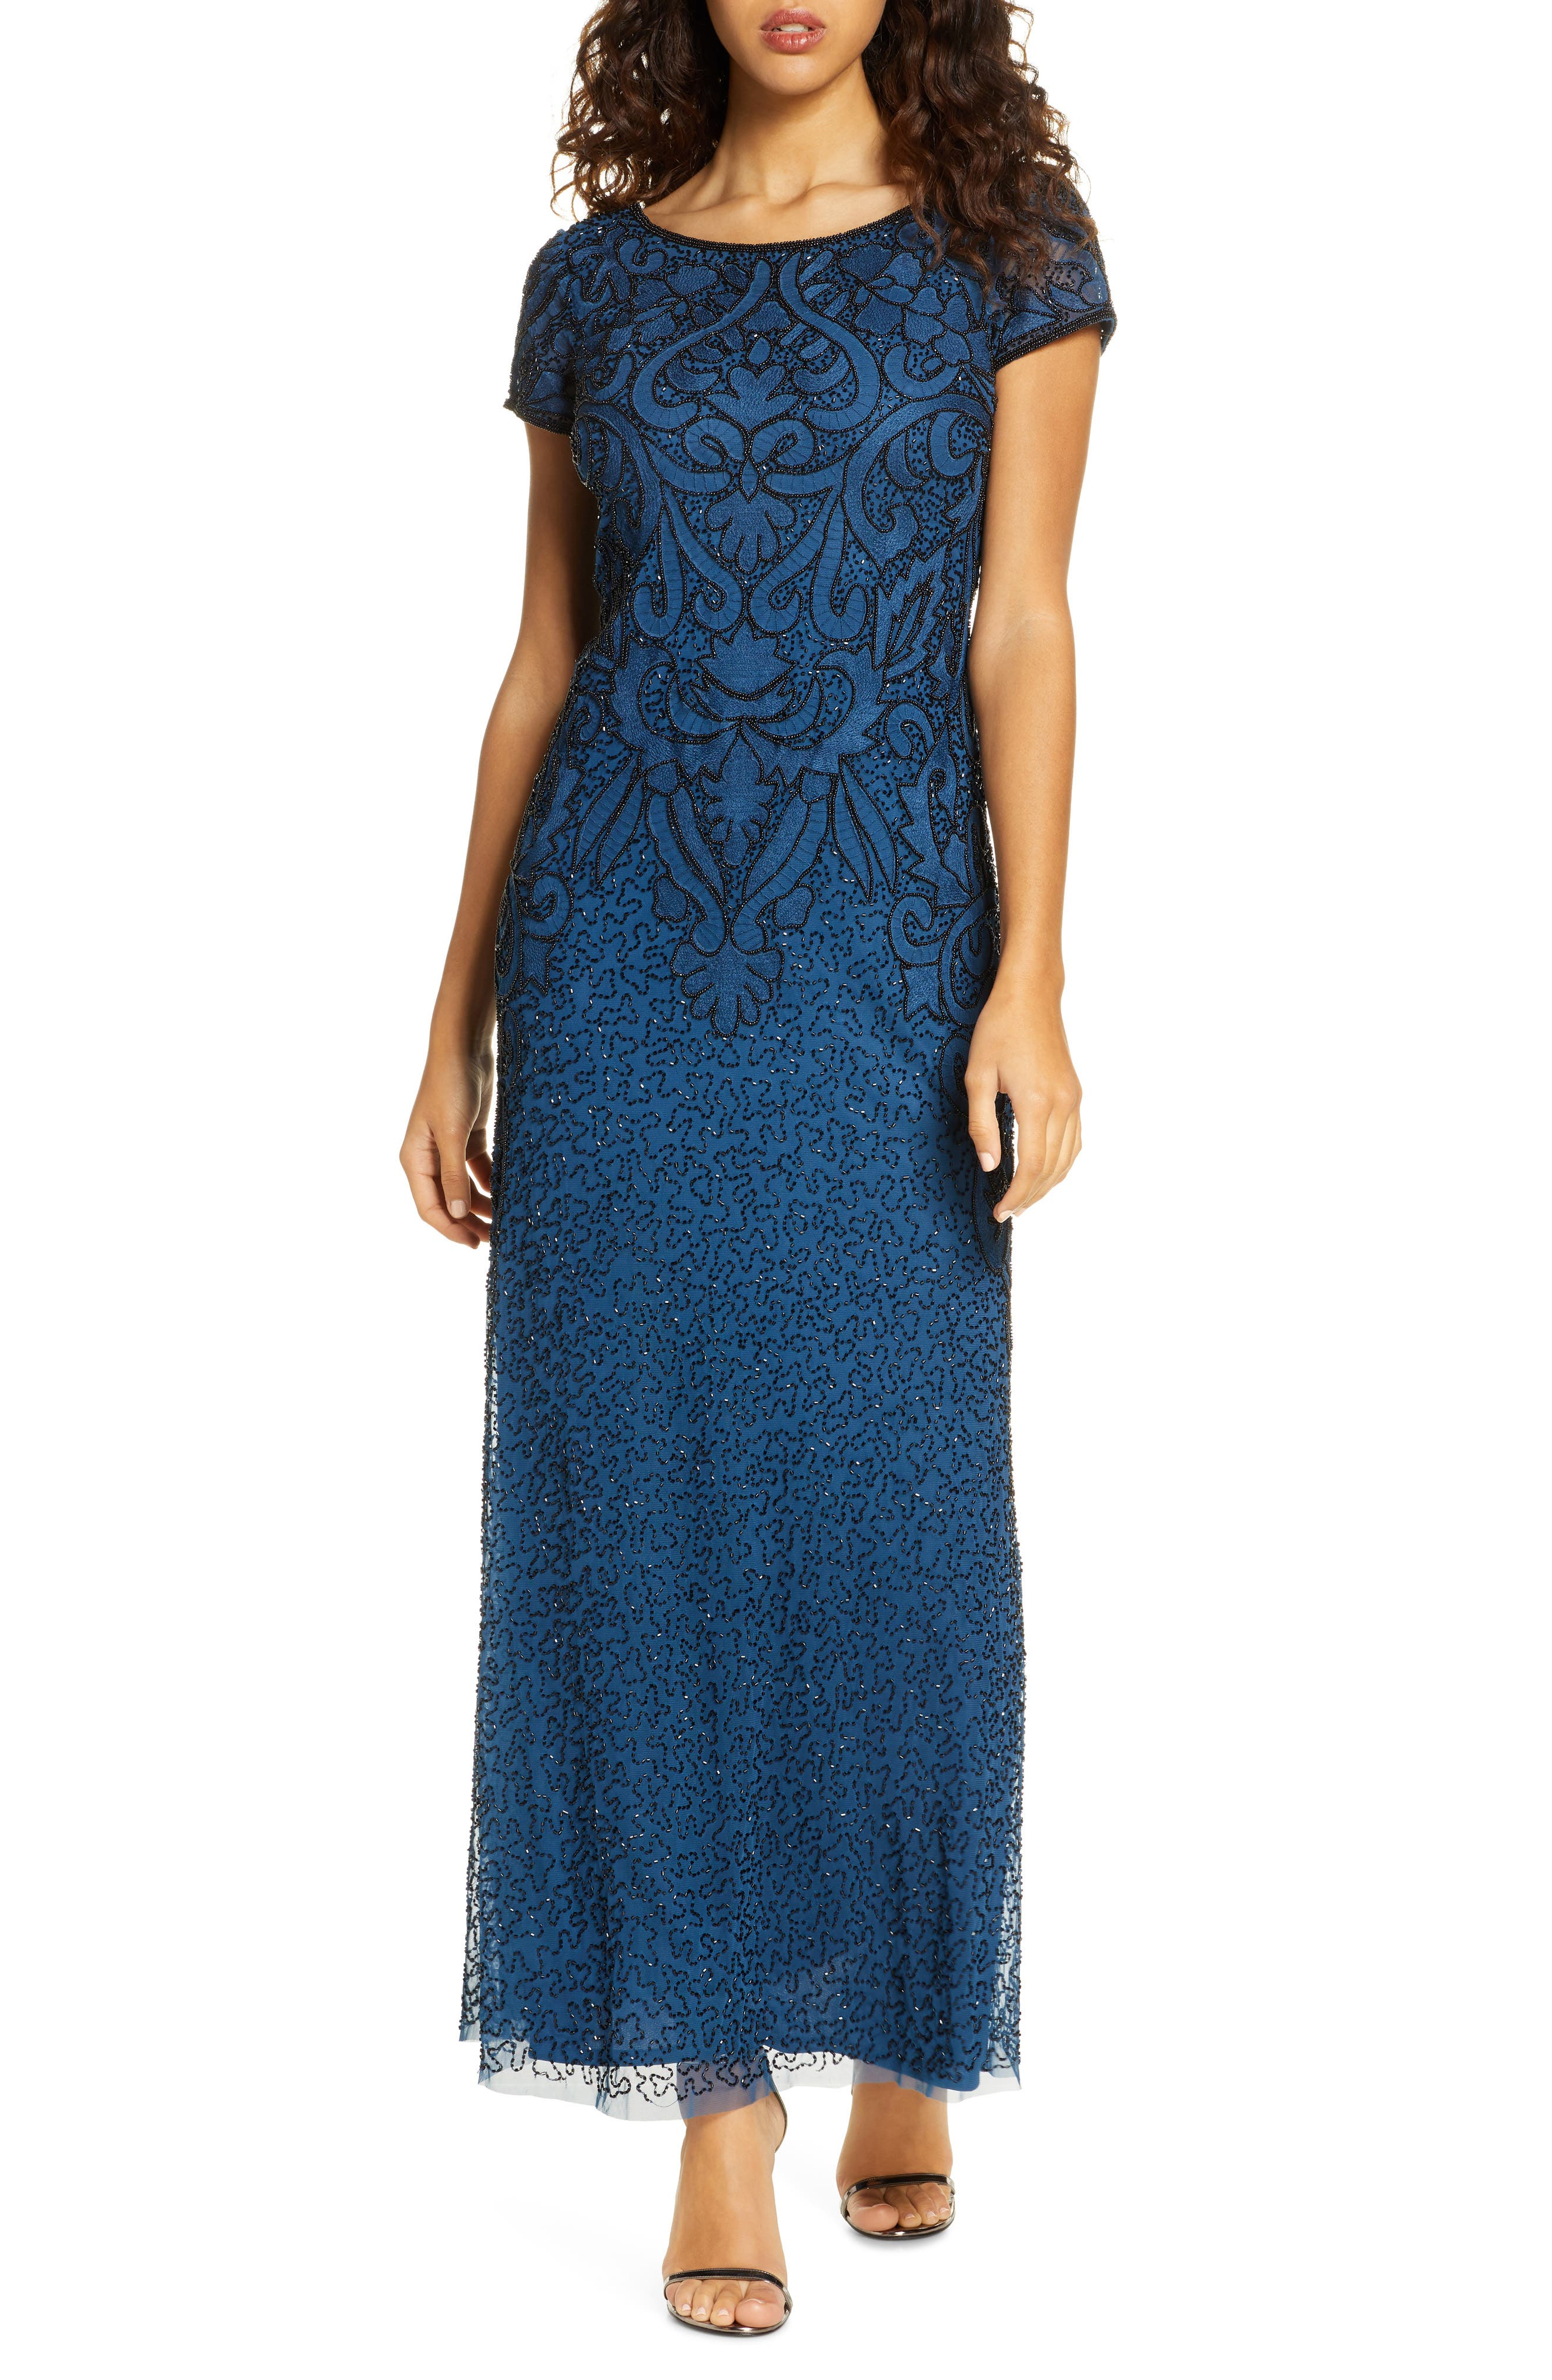 Art Deco Dresses | Art Deco Fashion, Clothing Womens Pisarro Nights Embroidered Mesh Gown Size 18 - Blue $238.00 AT vintagedancer.com